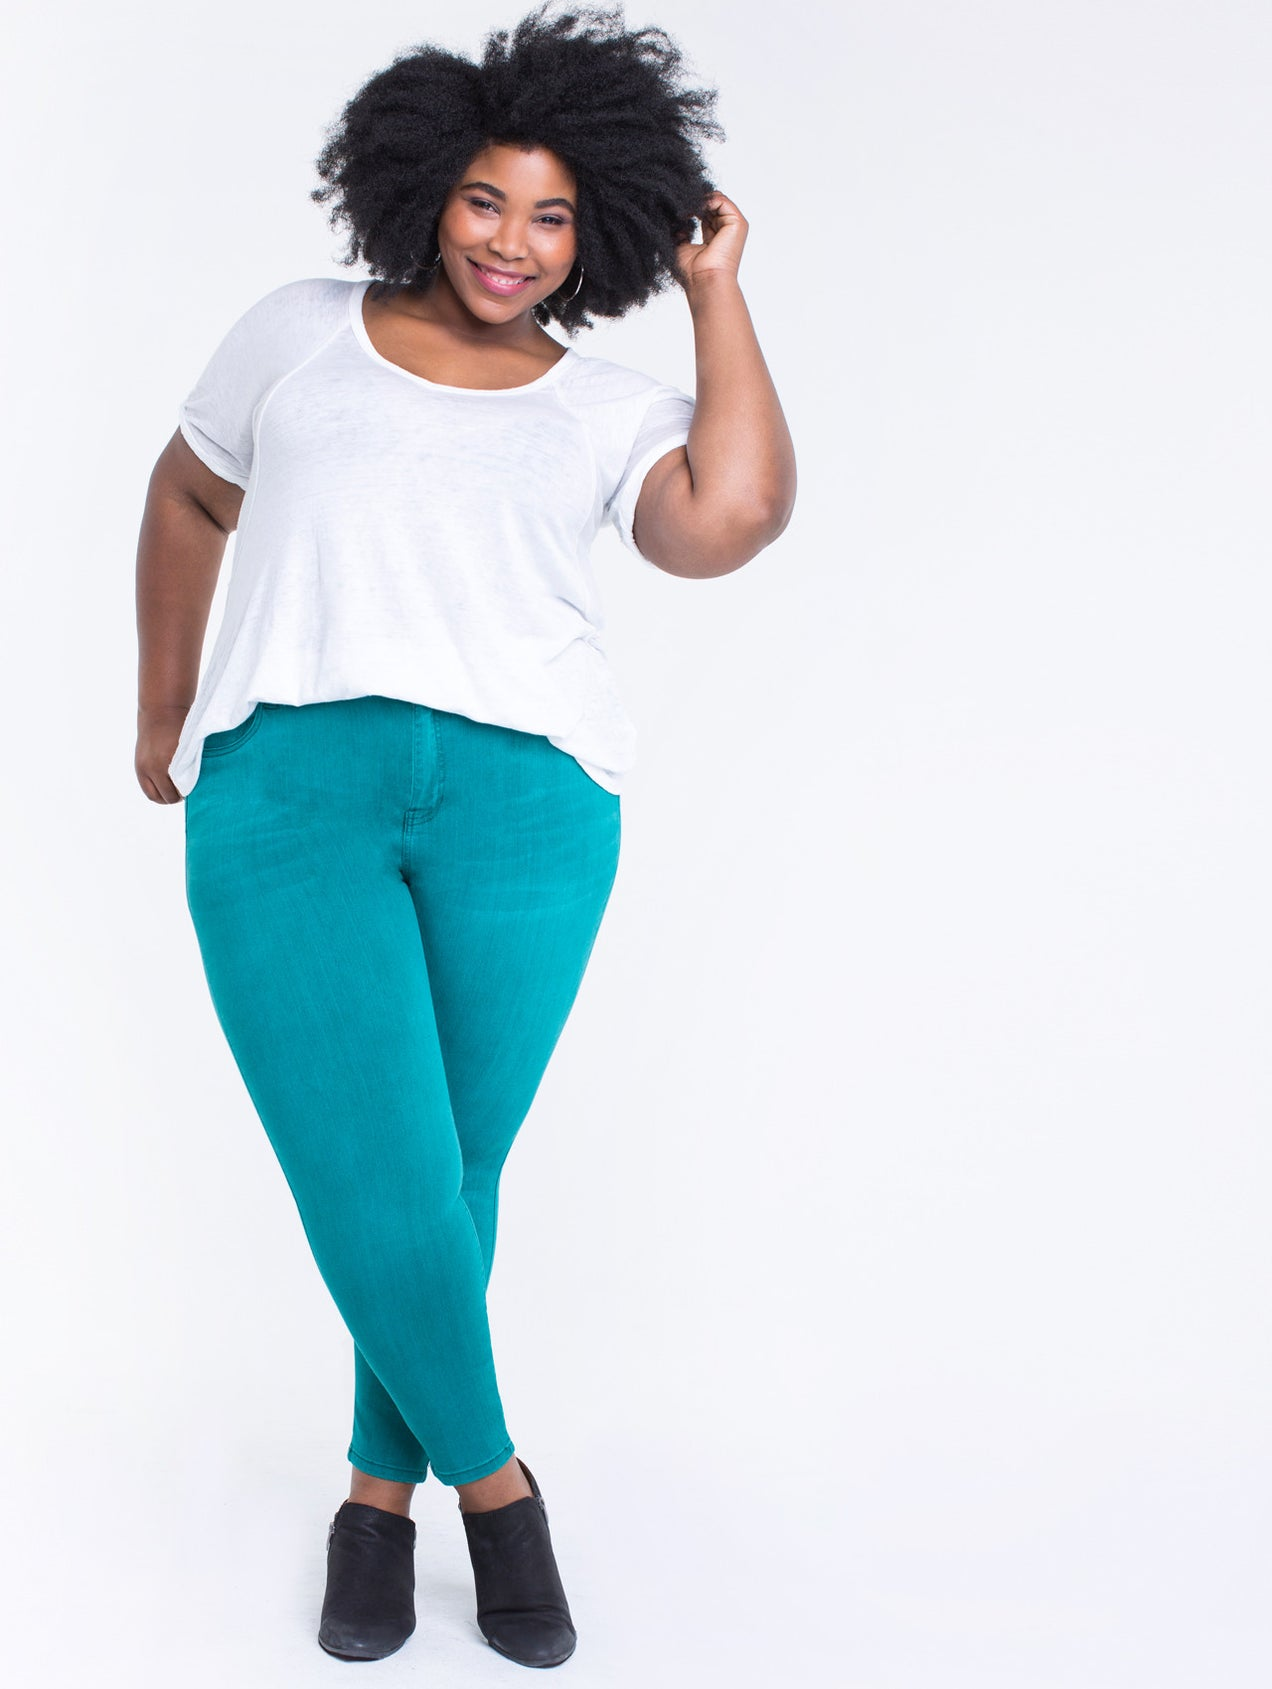 C'ne 5'8"